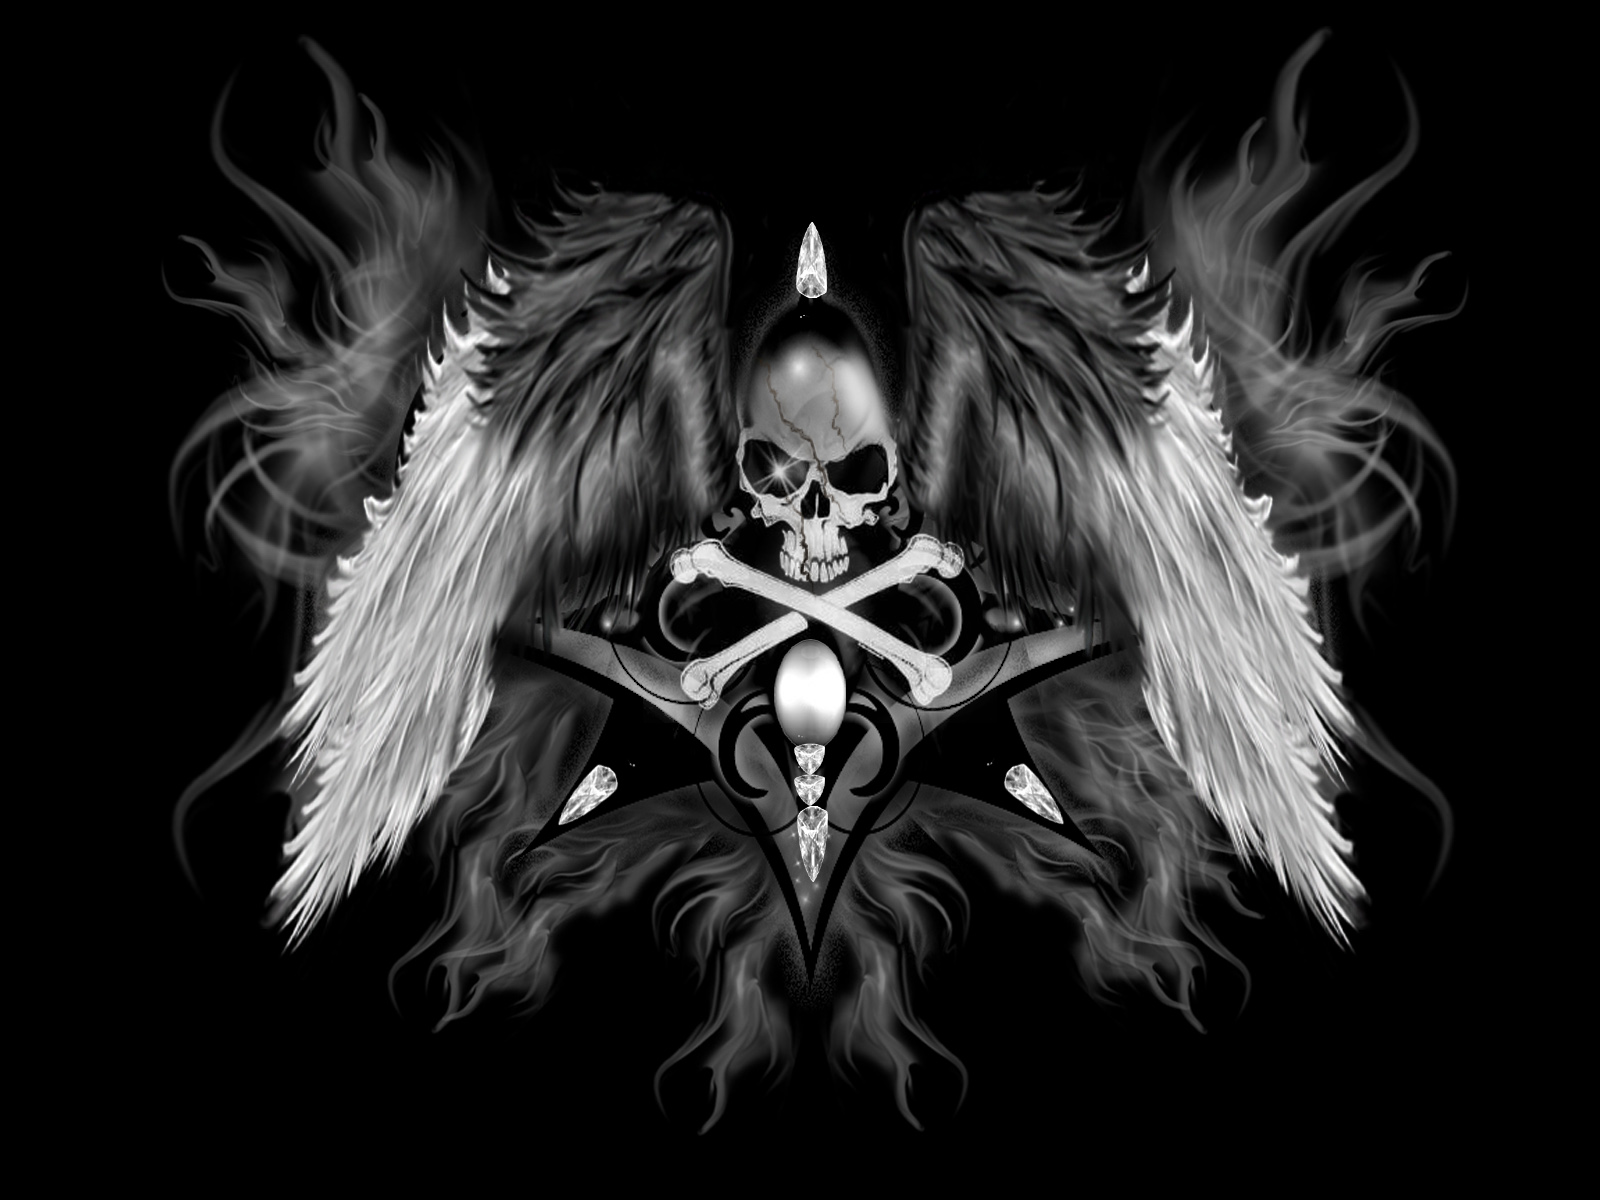 http://2.bp.blogspot.com/-tUI9-NdVVwY/TqPPYs7DqFI/AAAAAAAACoU/CID1w4w5abw/s1600/Skull+_wallpapers_Feather+_Wings_Angel_Skull.jpg